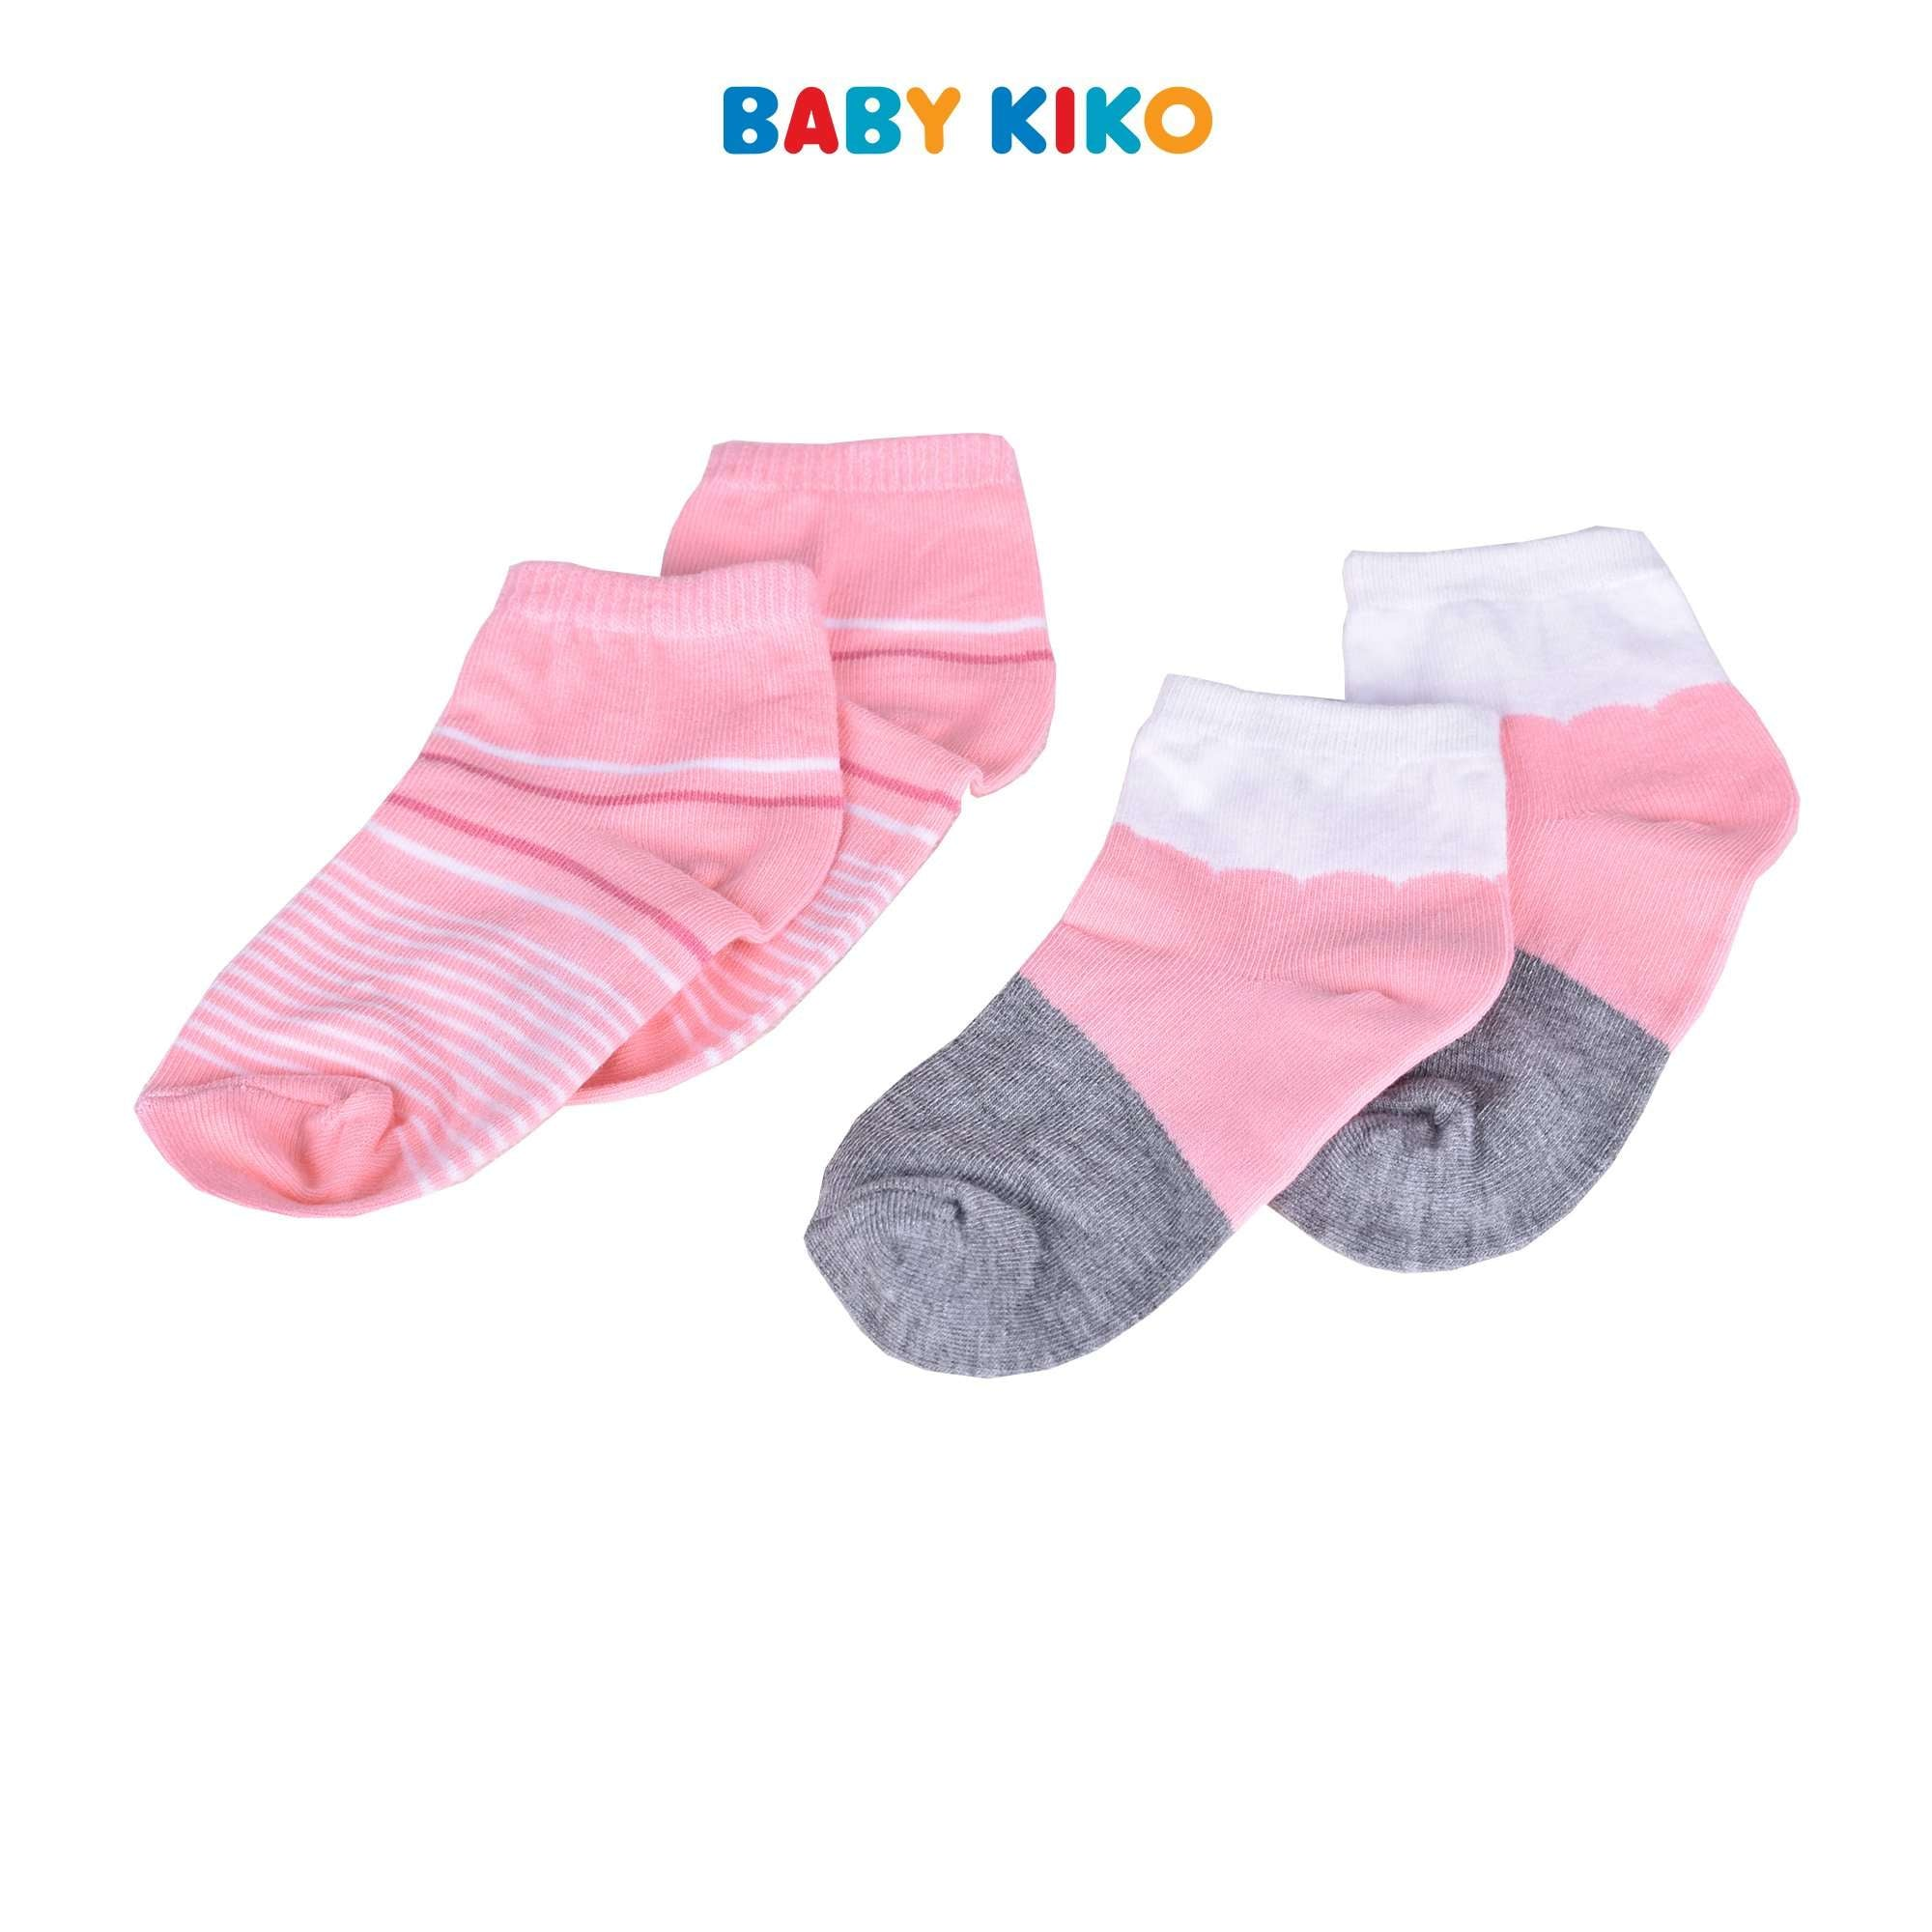 Baby KIKO Toddler Girl Ankle Height Socks 325146-754 : Buy Baby KIKO online at CMG.MY